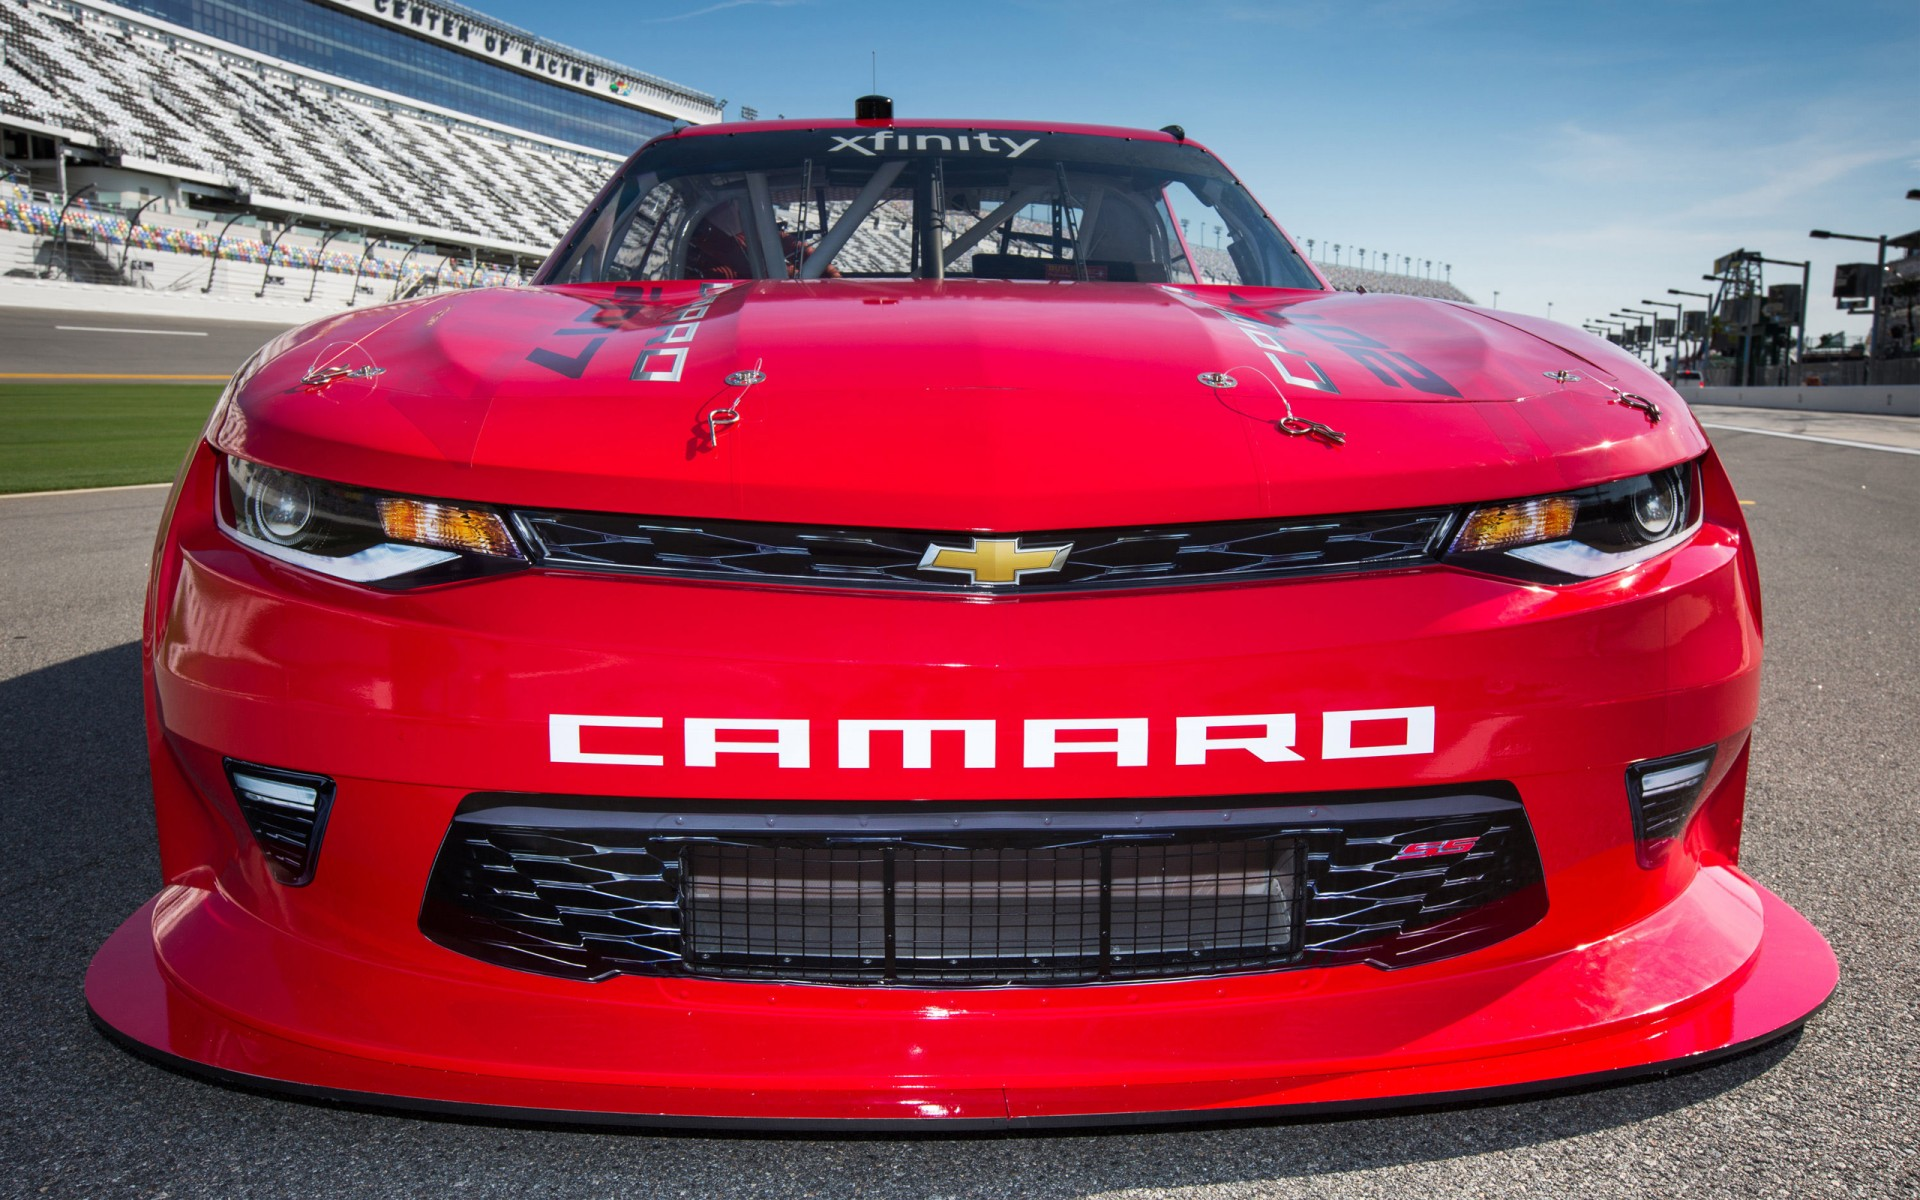 2017 Camaro 50th Anniversary >> 2017 NASCAR XFINITY Series Camaro SS Wallpaper | HD Car ...